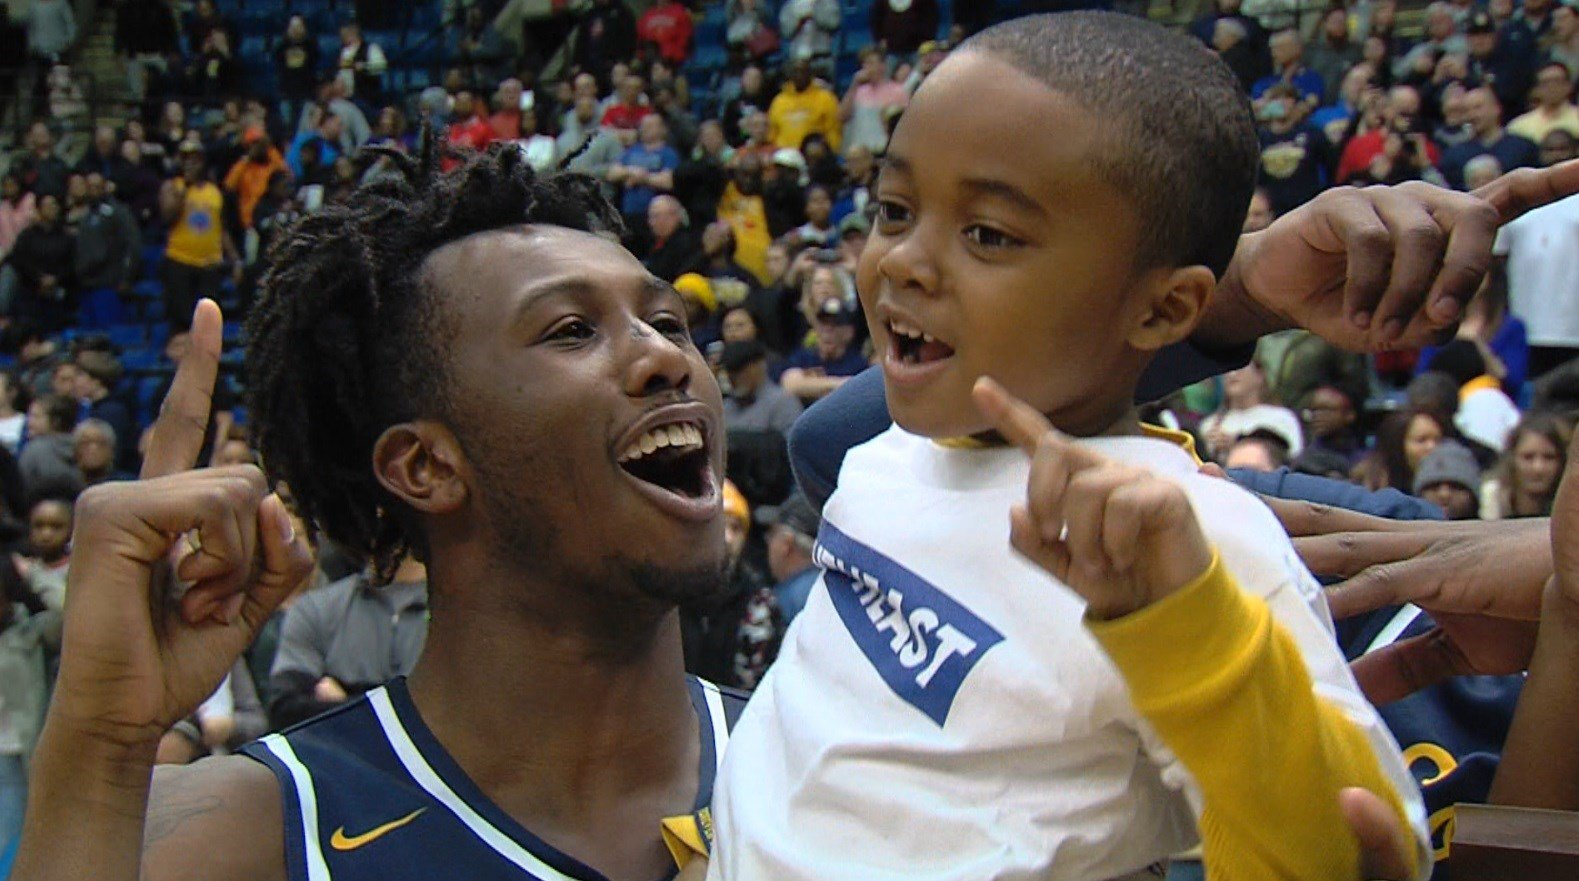 Southeast junior Anthony Fairlee celebrates the Spartans' super-sectional win over Marion.